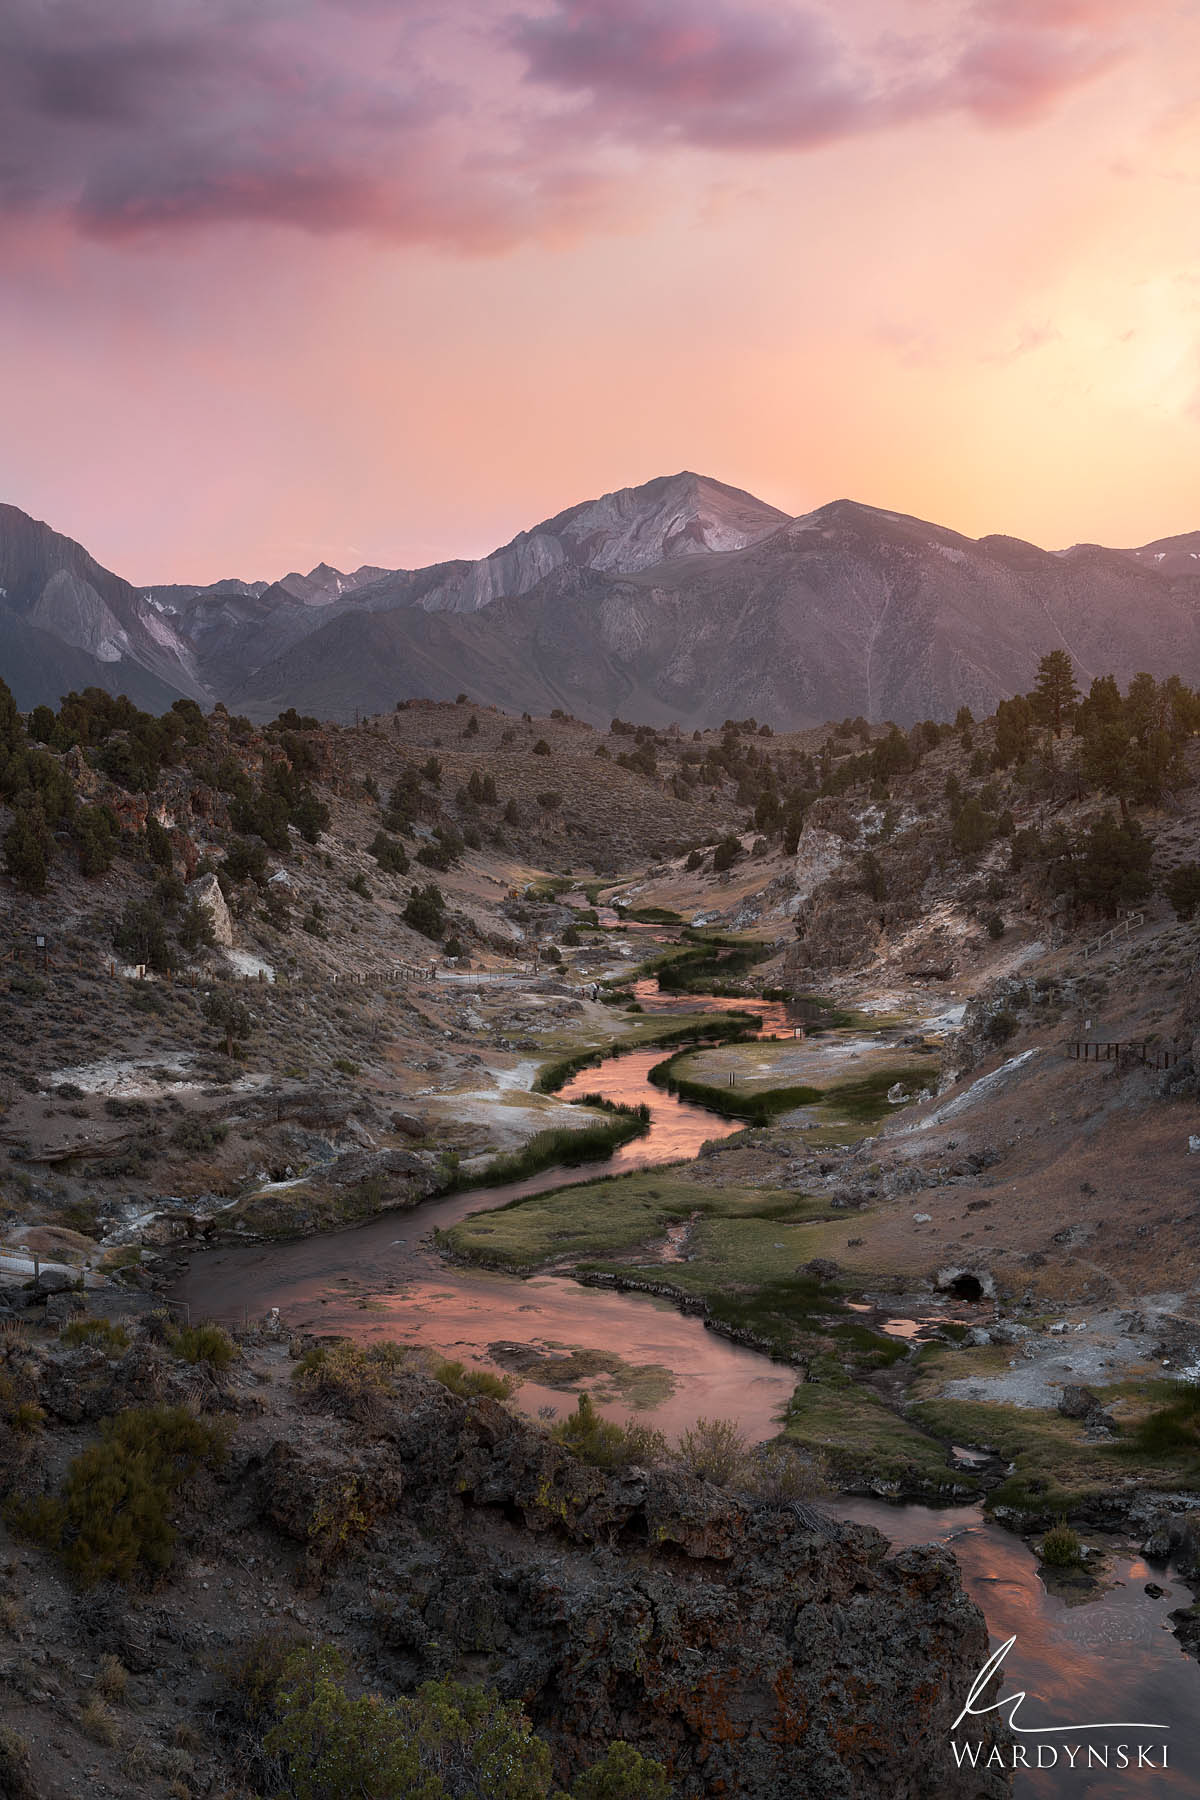 Fine Art Print | Limited Edition of 100  The Eastern Sierra Nevada in California is one of the most beautiful places in the world...